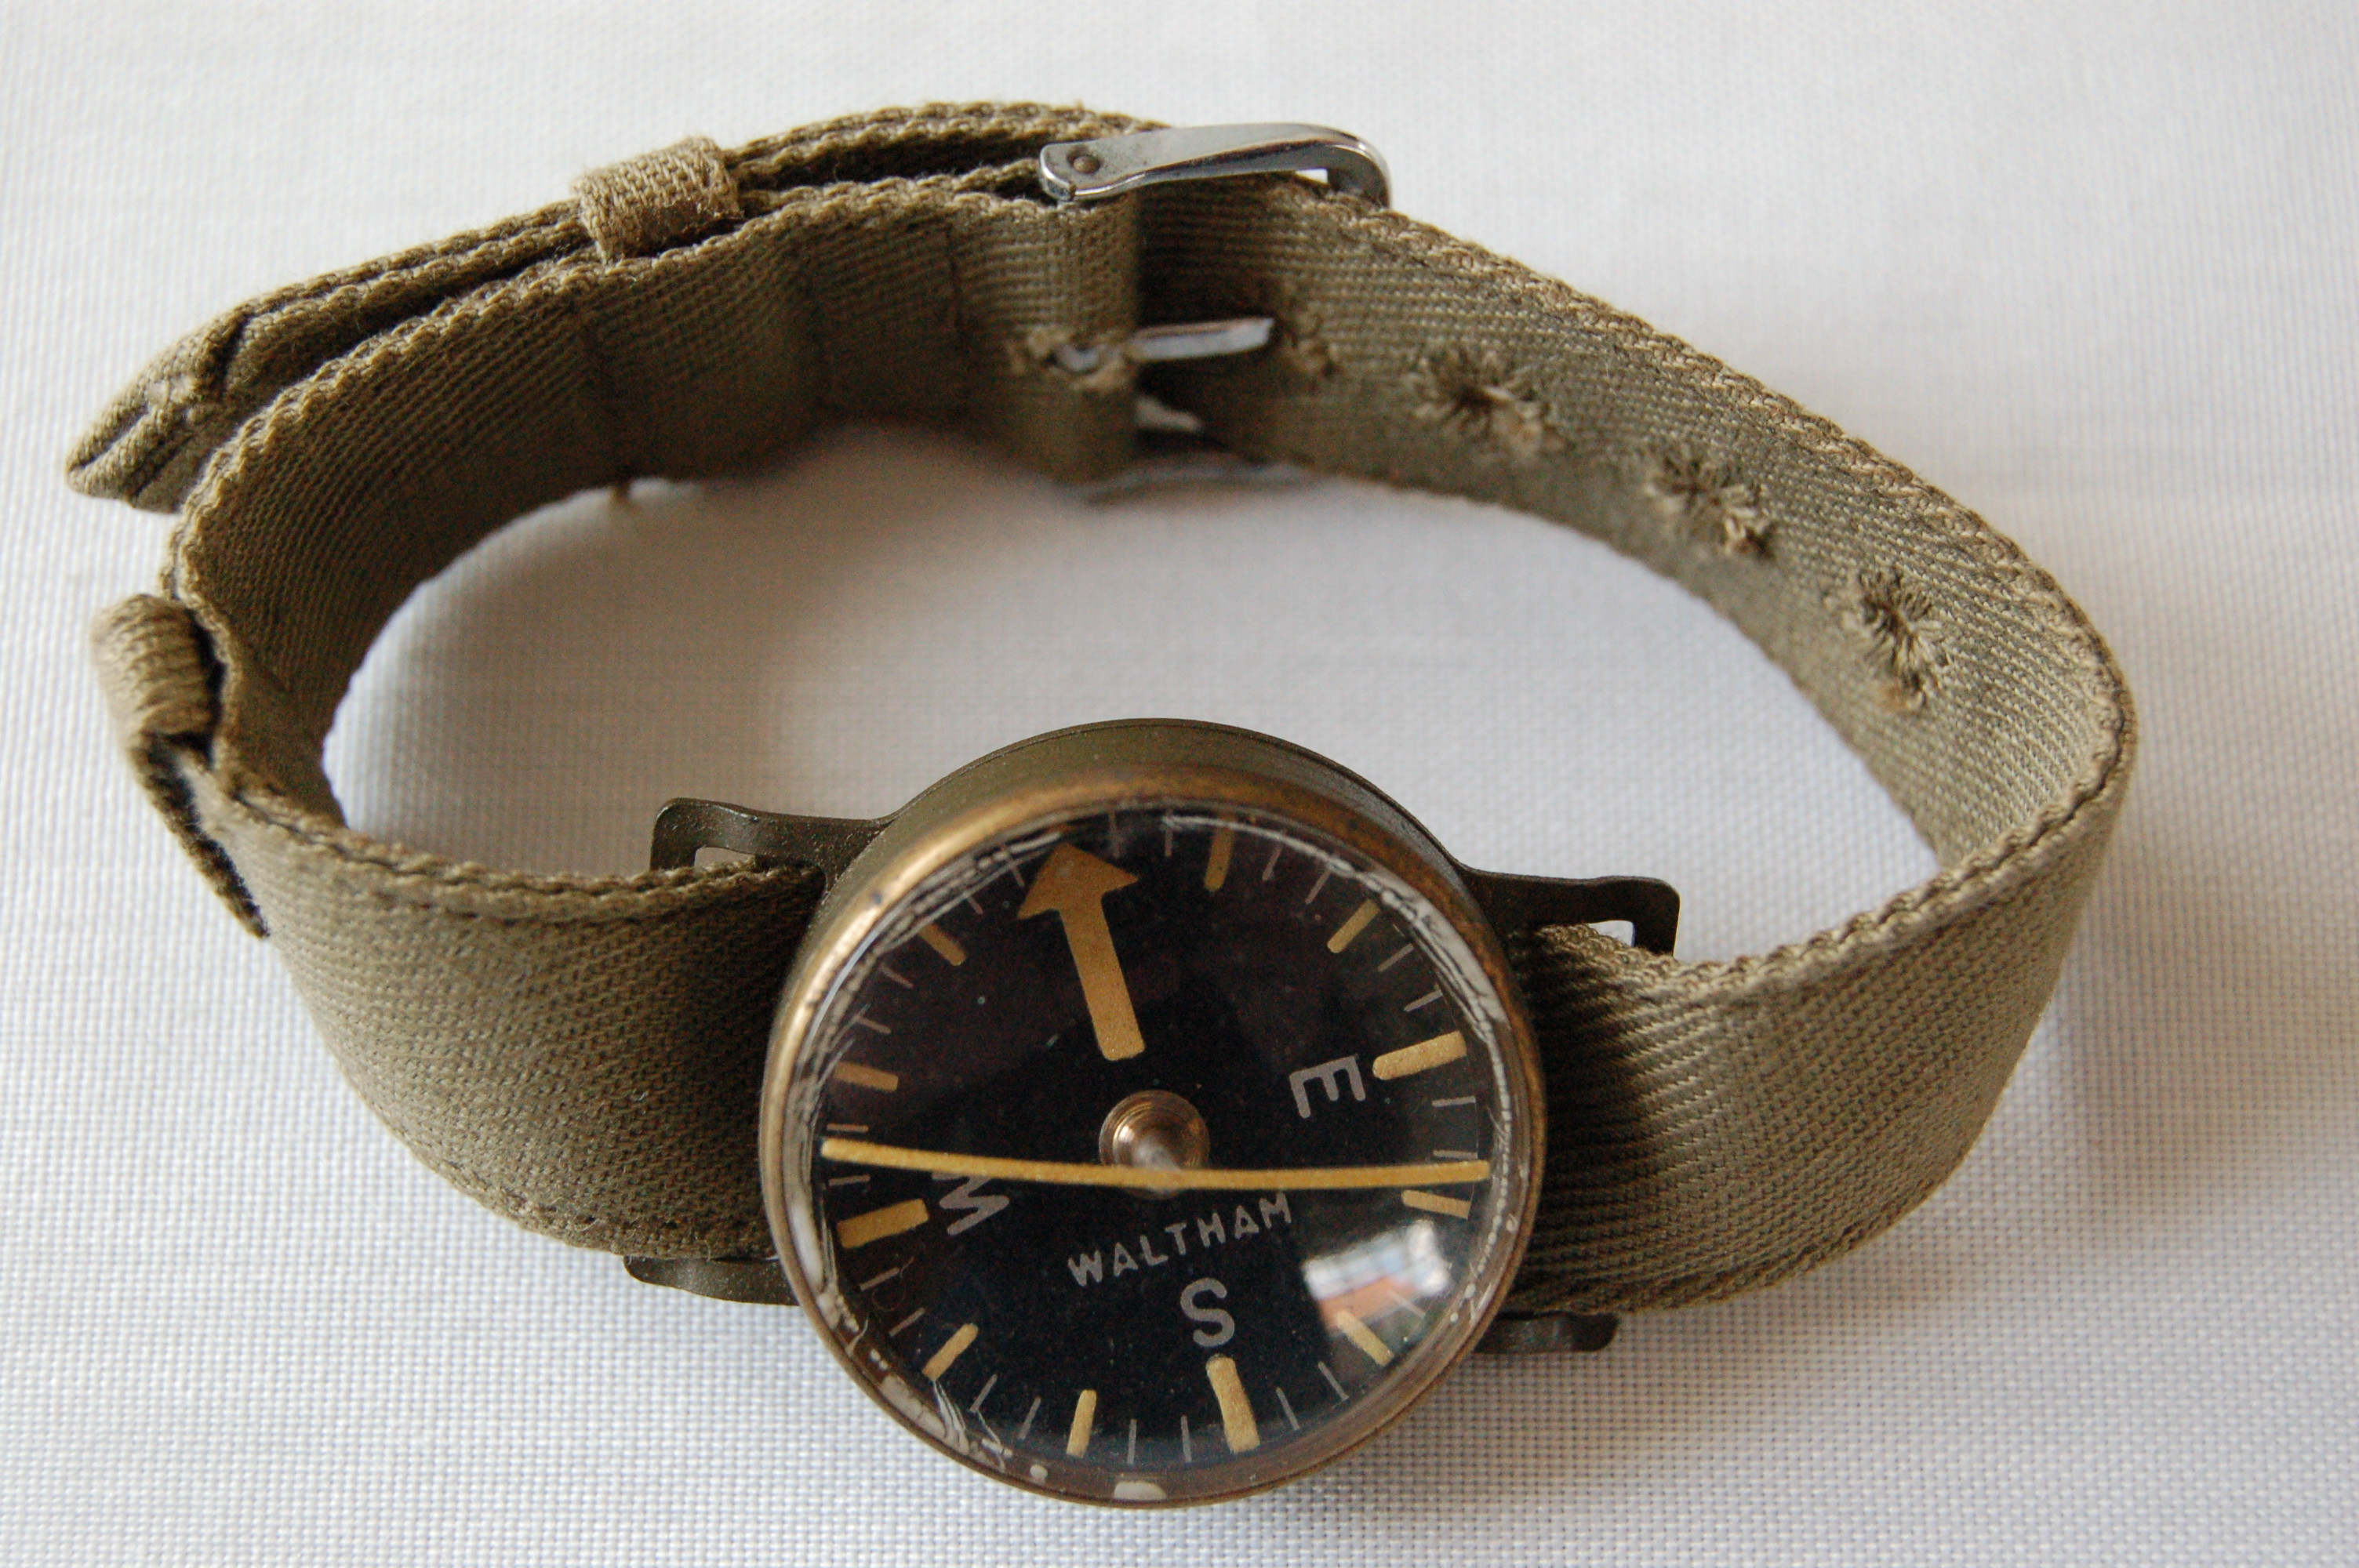 Operation in the Delta (Rolex Inside) Waltham-wrist-compass